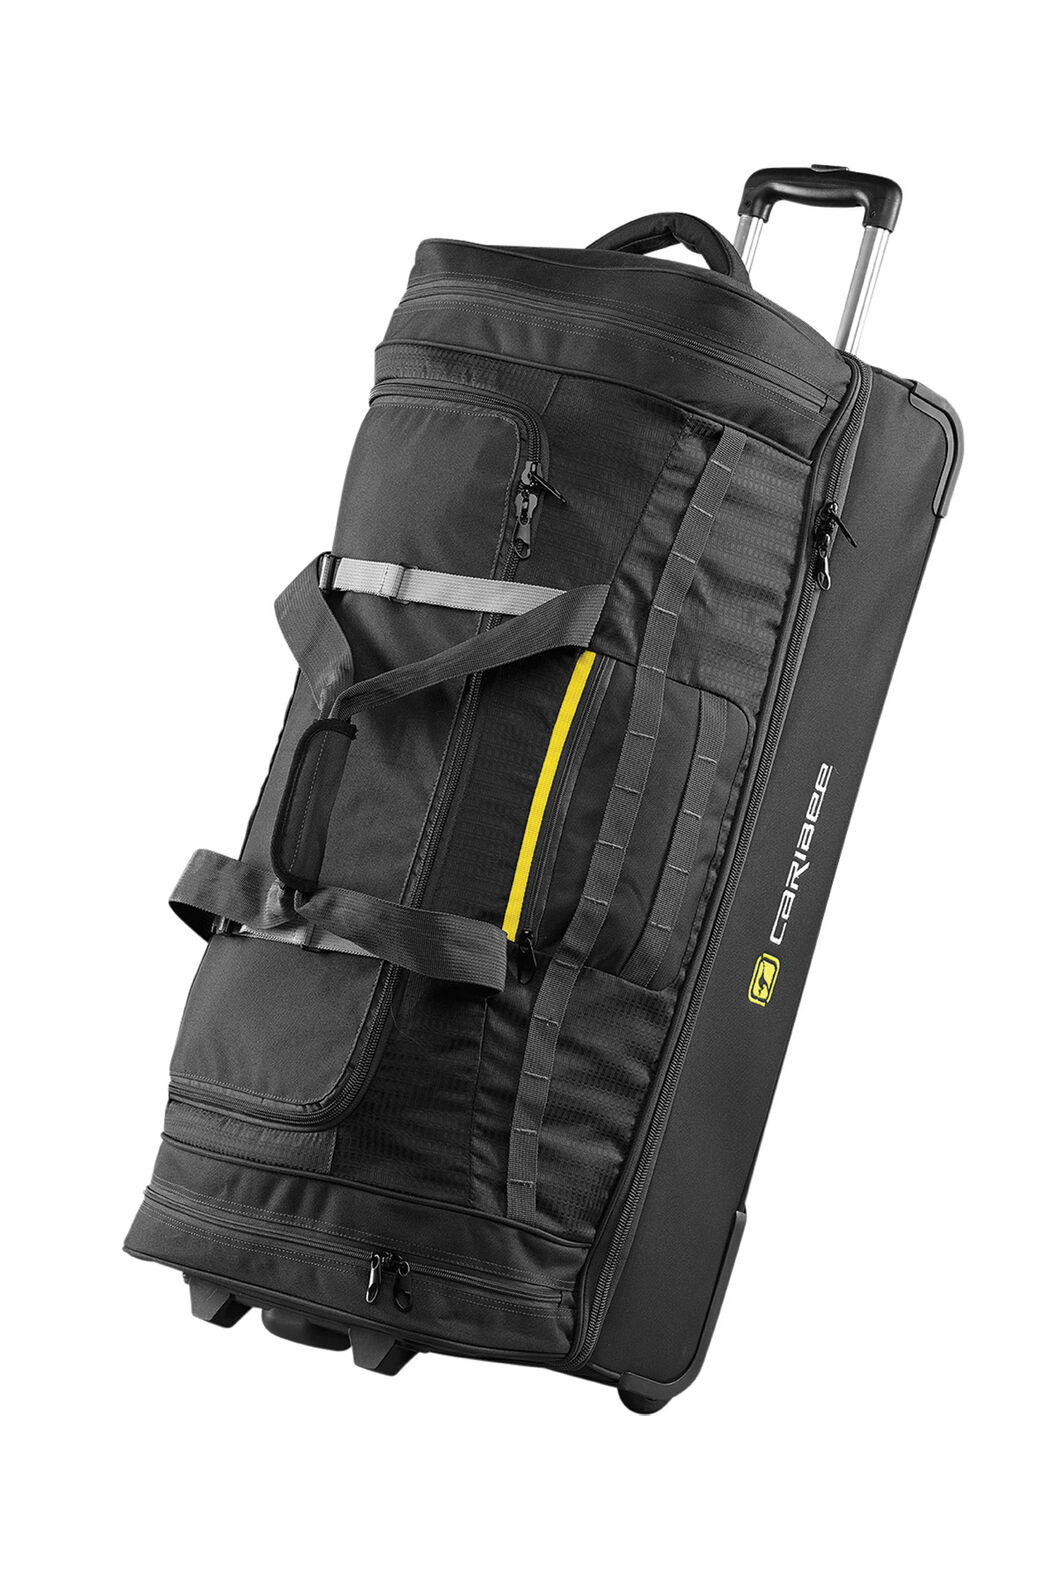 Caribee Scarecrow 85L Wheeled Luggage, None, hi-res